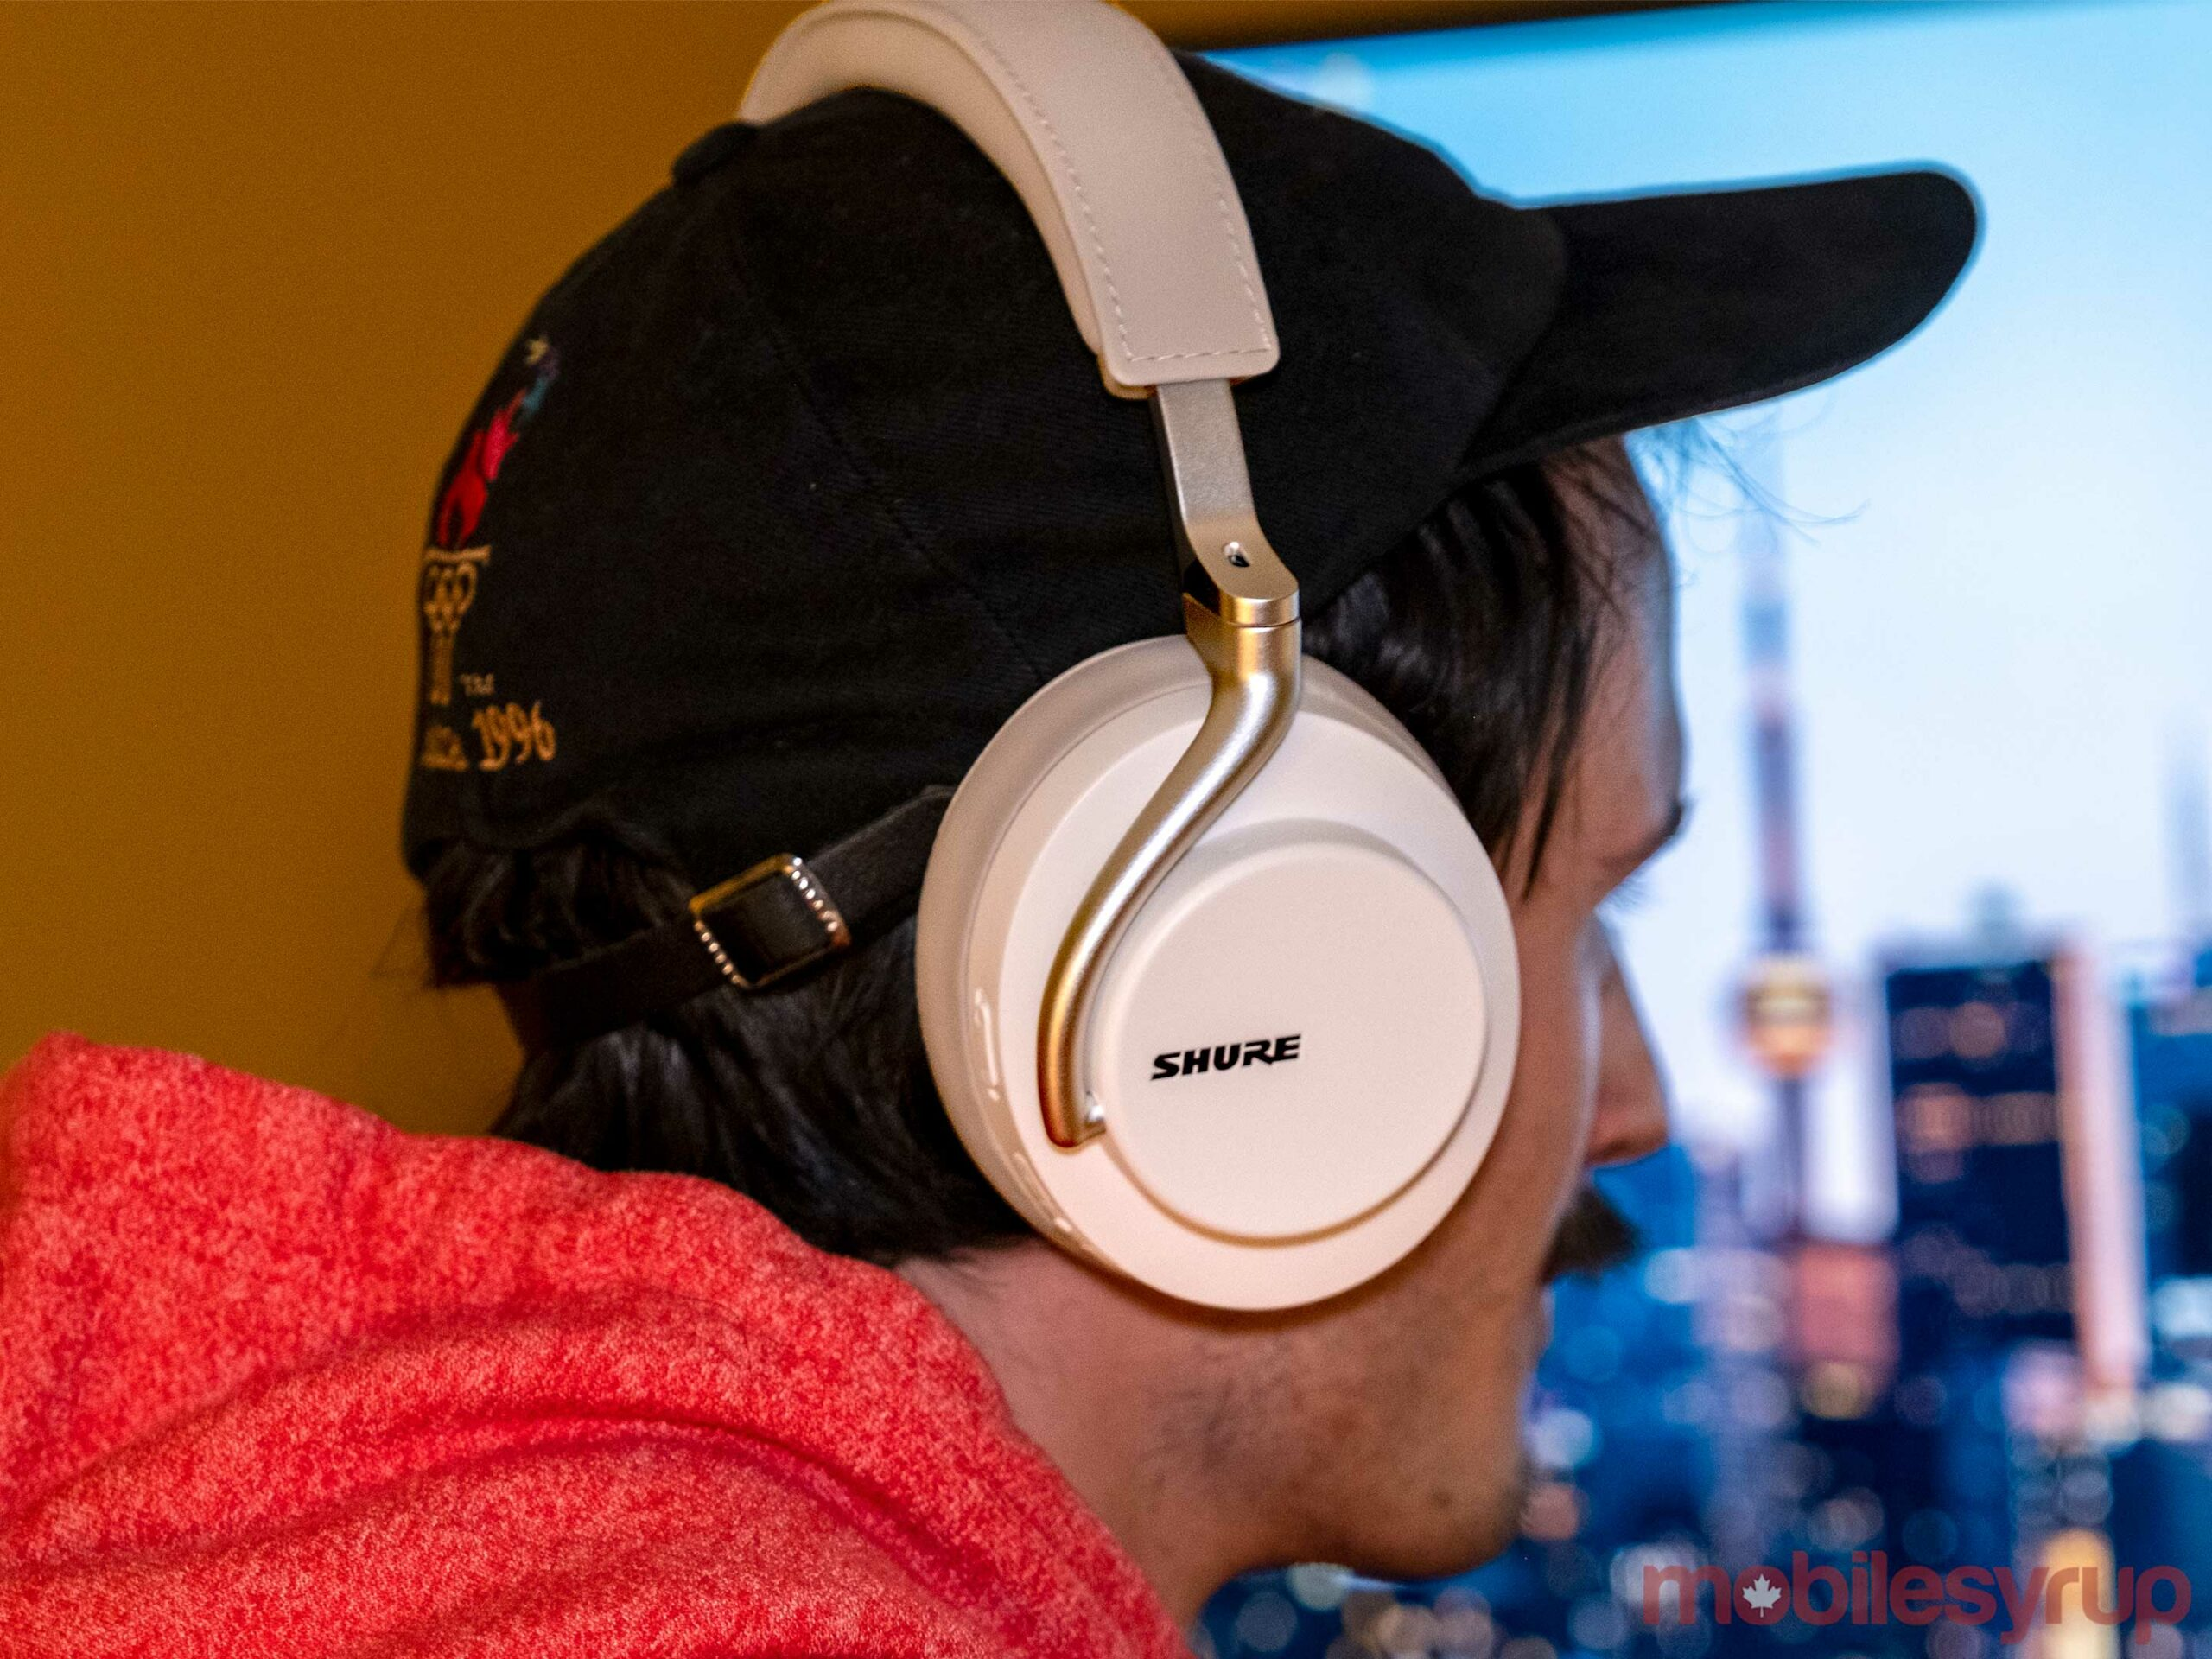 Shure Aonic 50 Noise Cancelling Headphones Review: A mixed bag